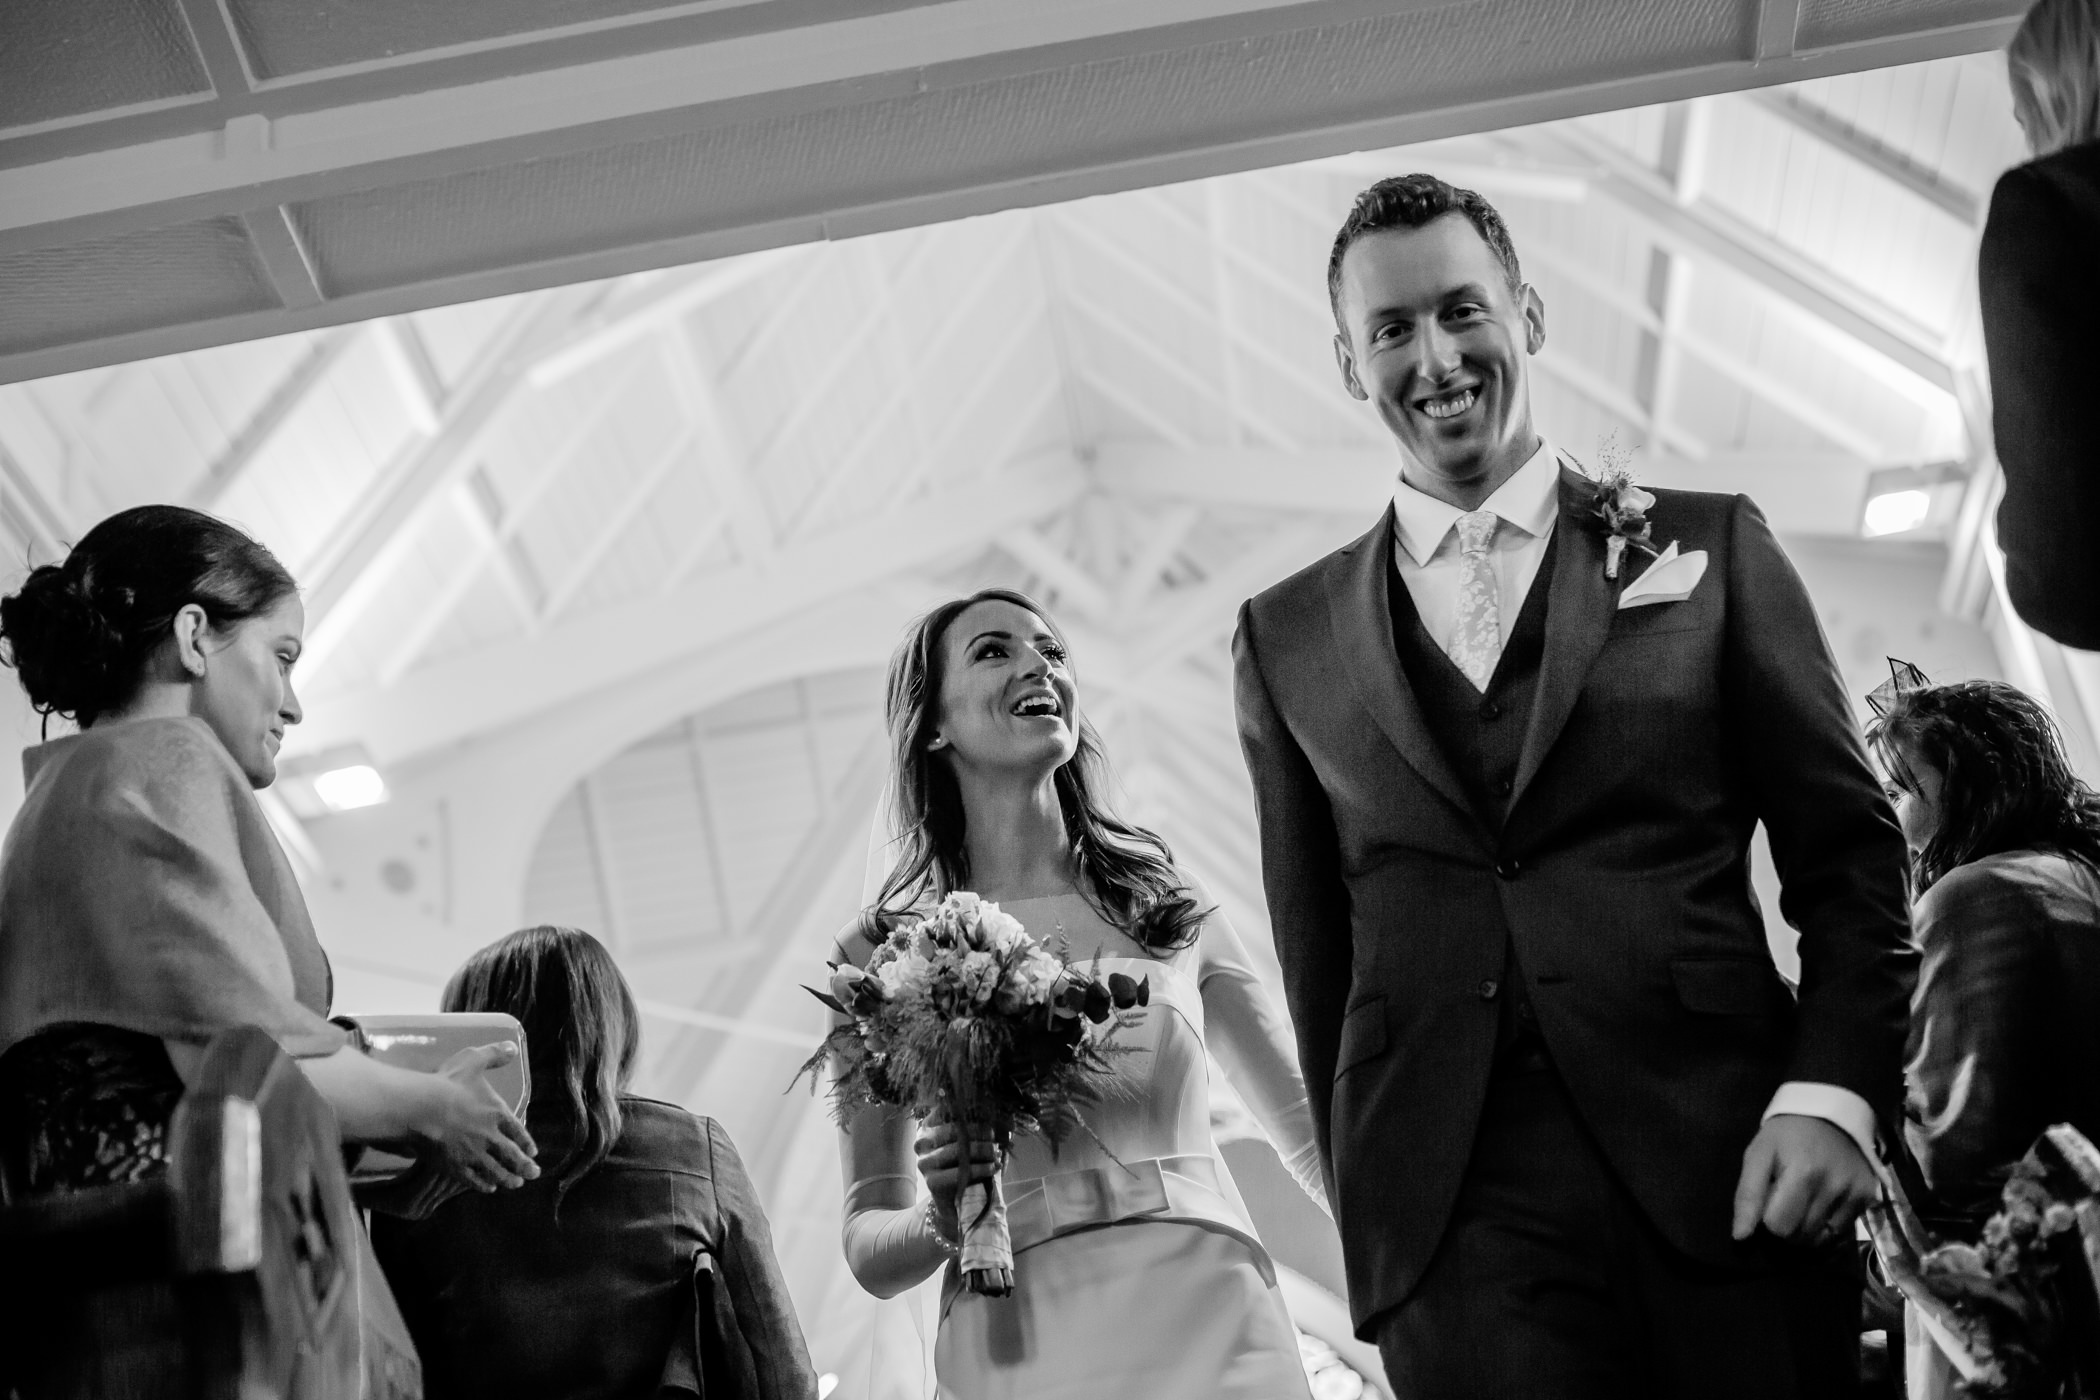 Isobel & Karl - Sansom Photography - Kilshane House Wedding Ireland-10